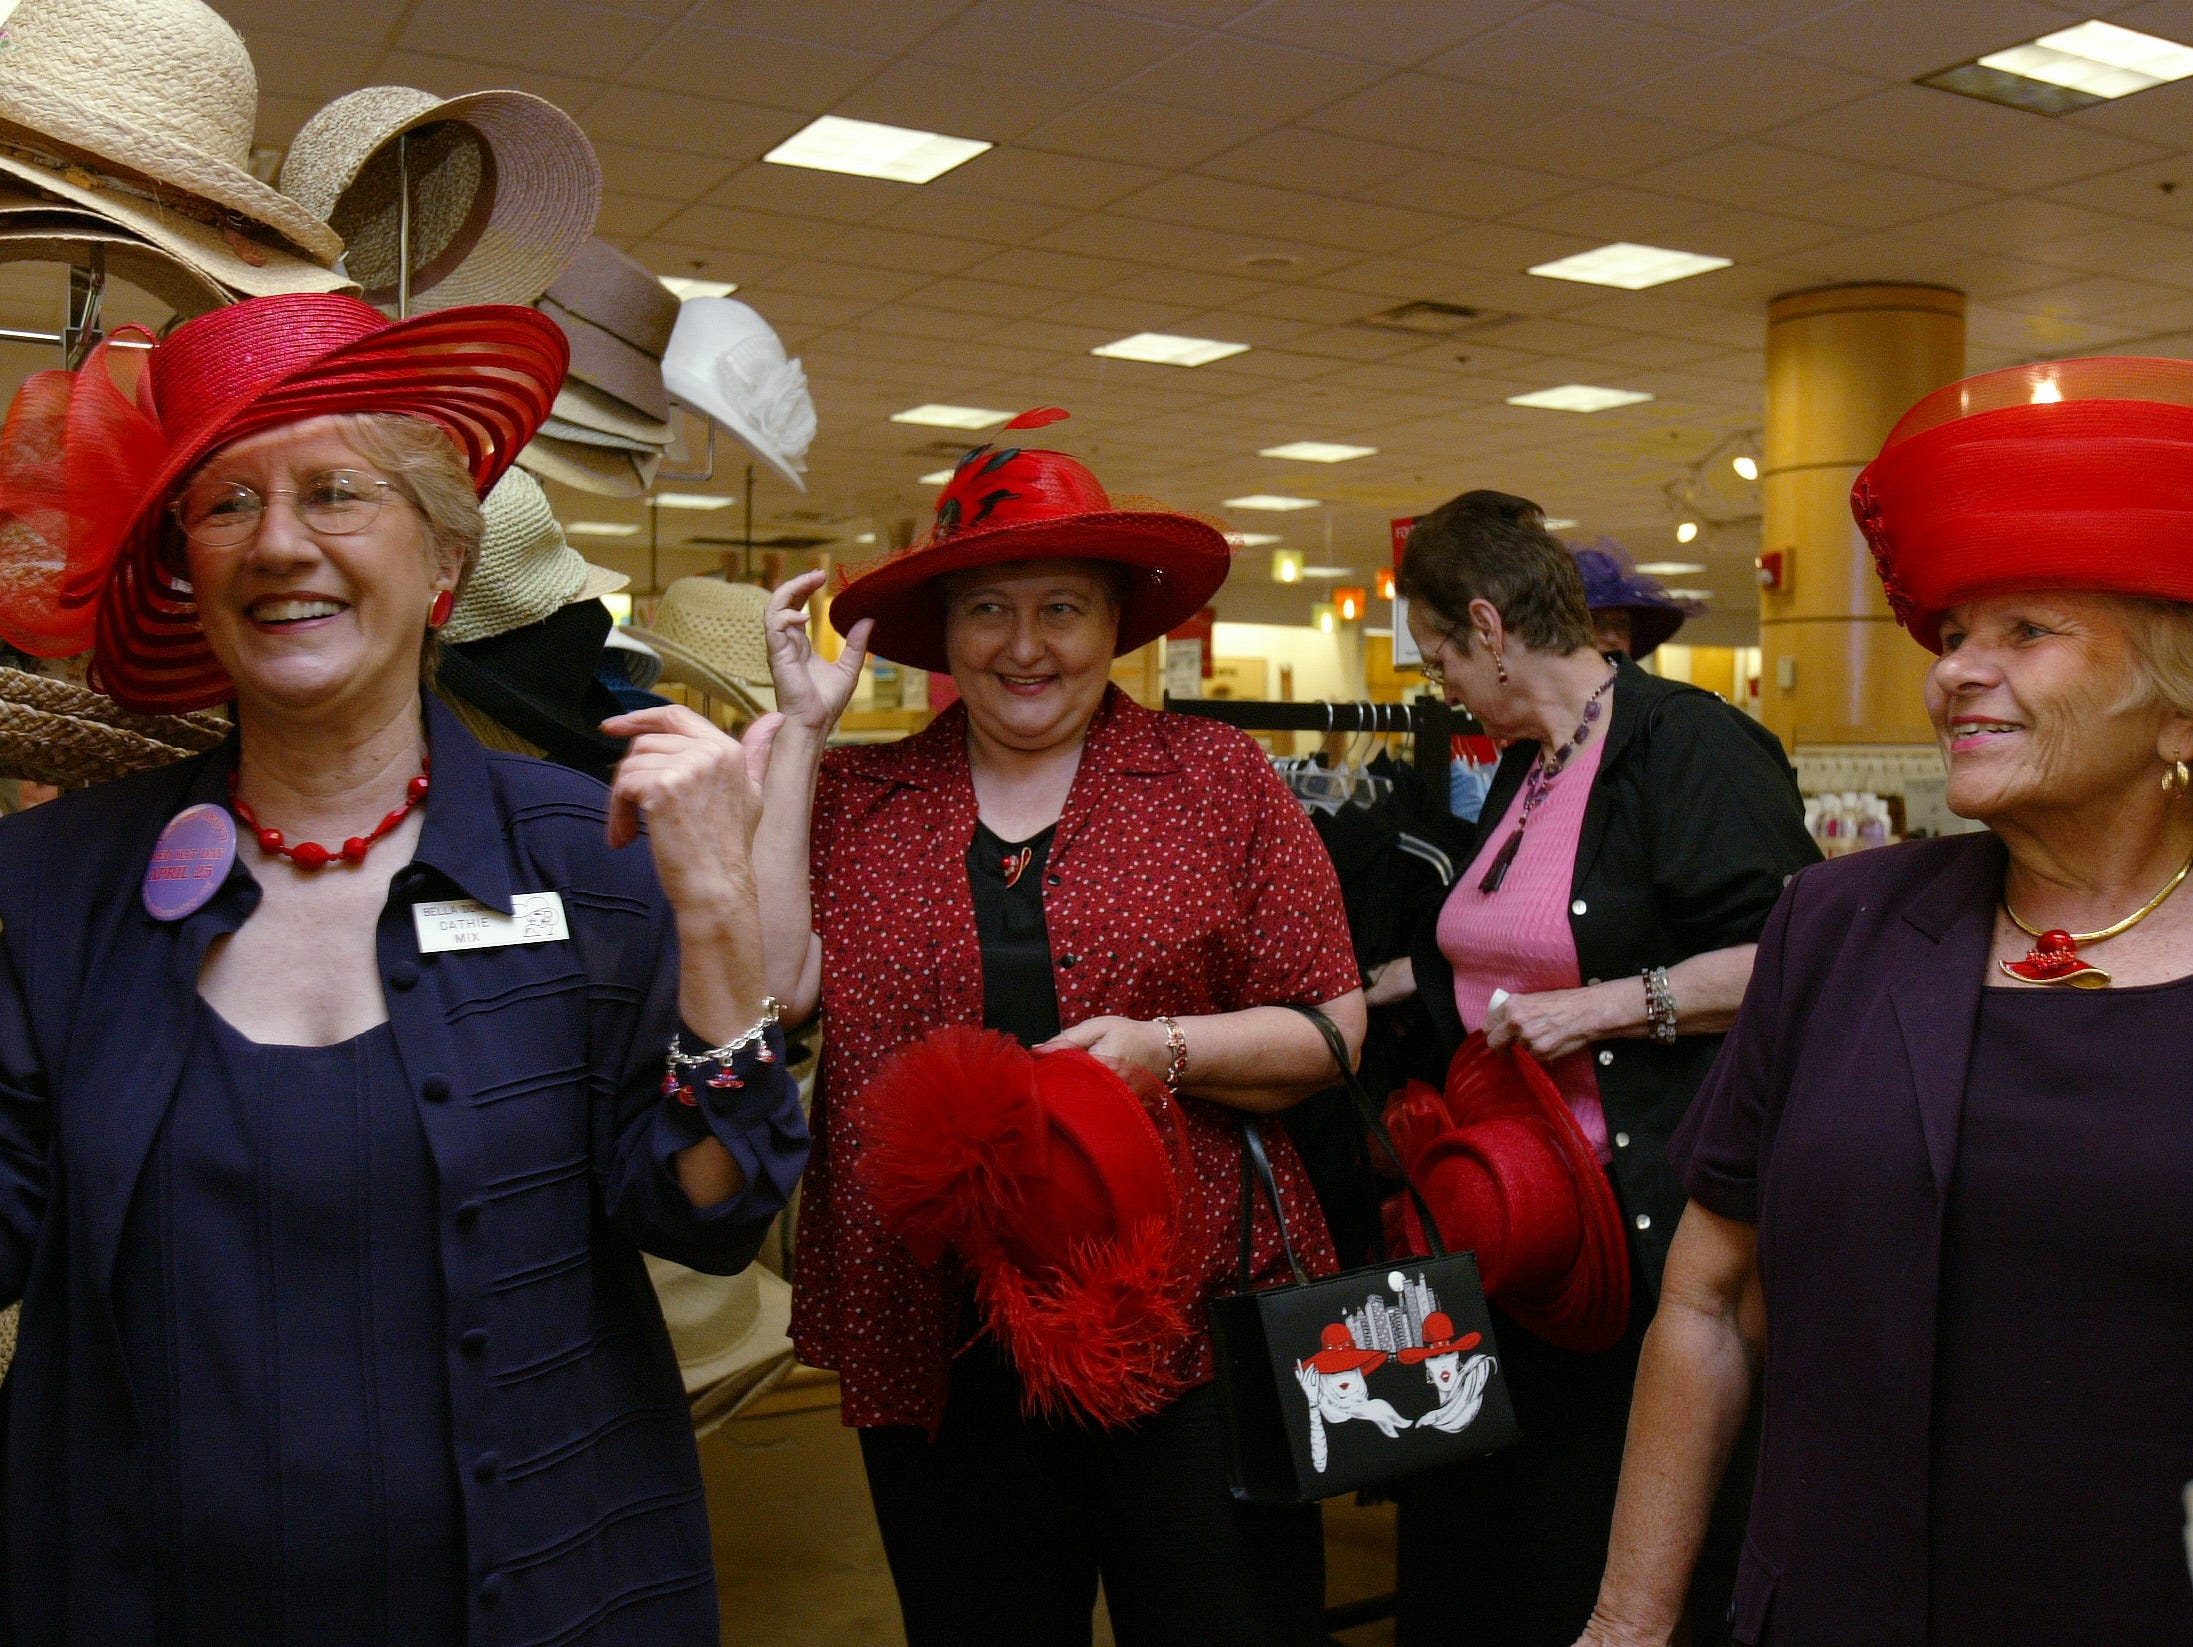 Cathie Mix, left, laughs as she tries on a red hat along with Elizabeth Jett, Jackie Pavelka and Camille Cook at Proffitt's in West Town Mall on Sunday. Mix, Jett and Cook are members of the Red Hat Society, a national organization dedicated to making midlife fun.